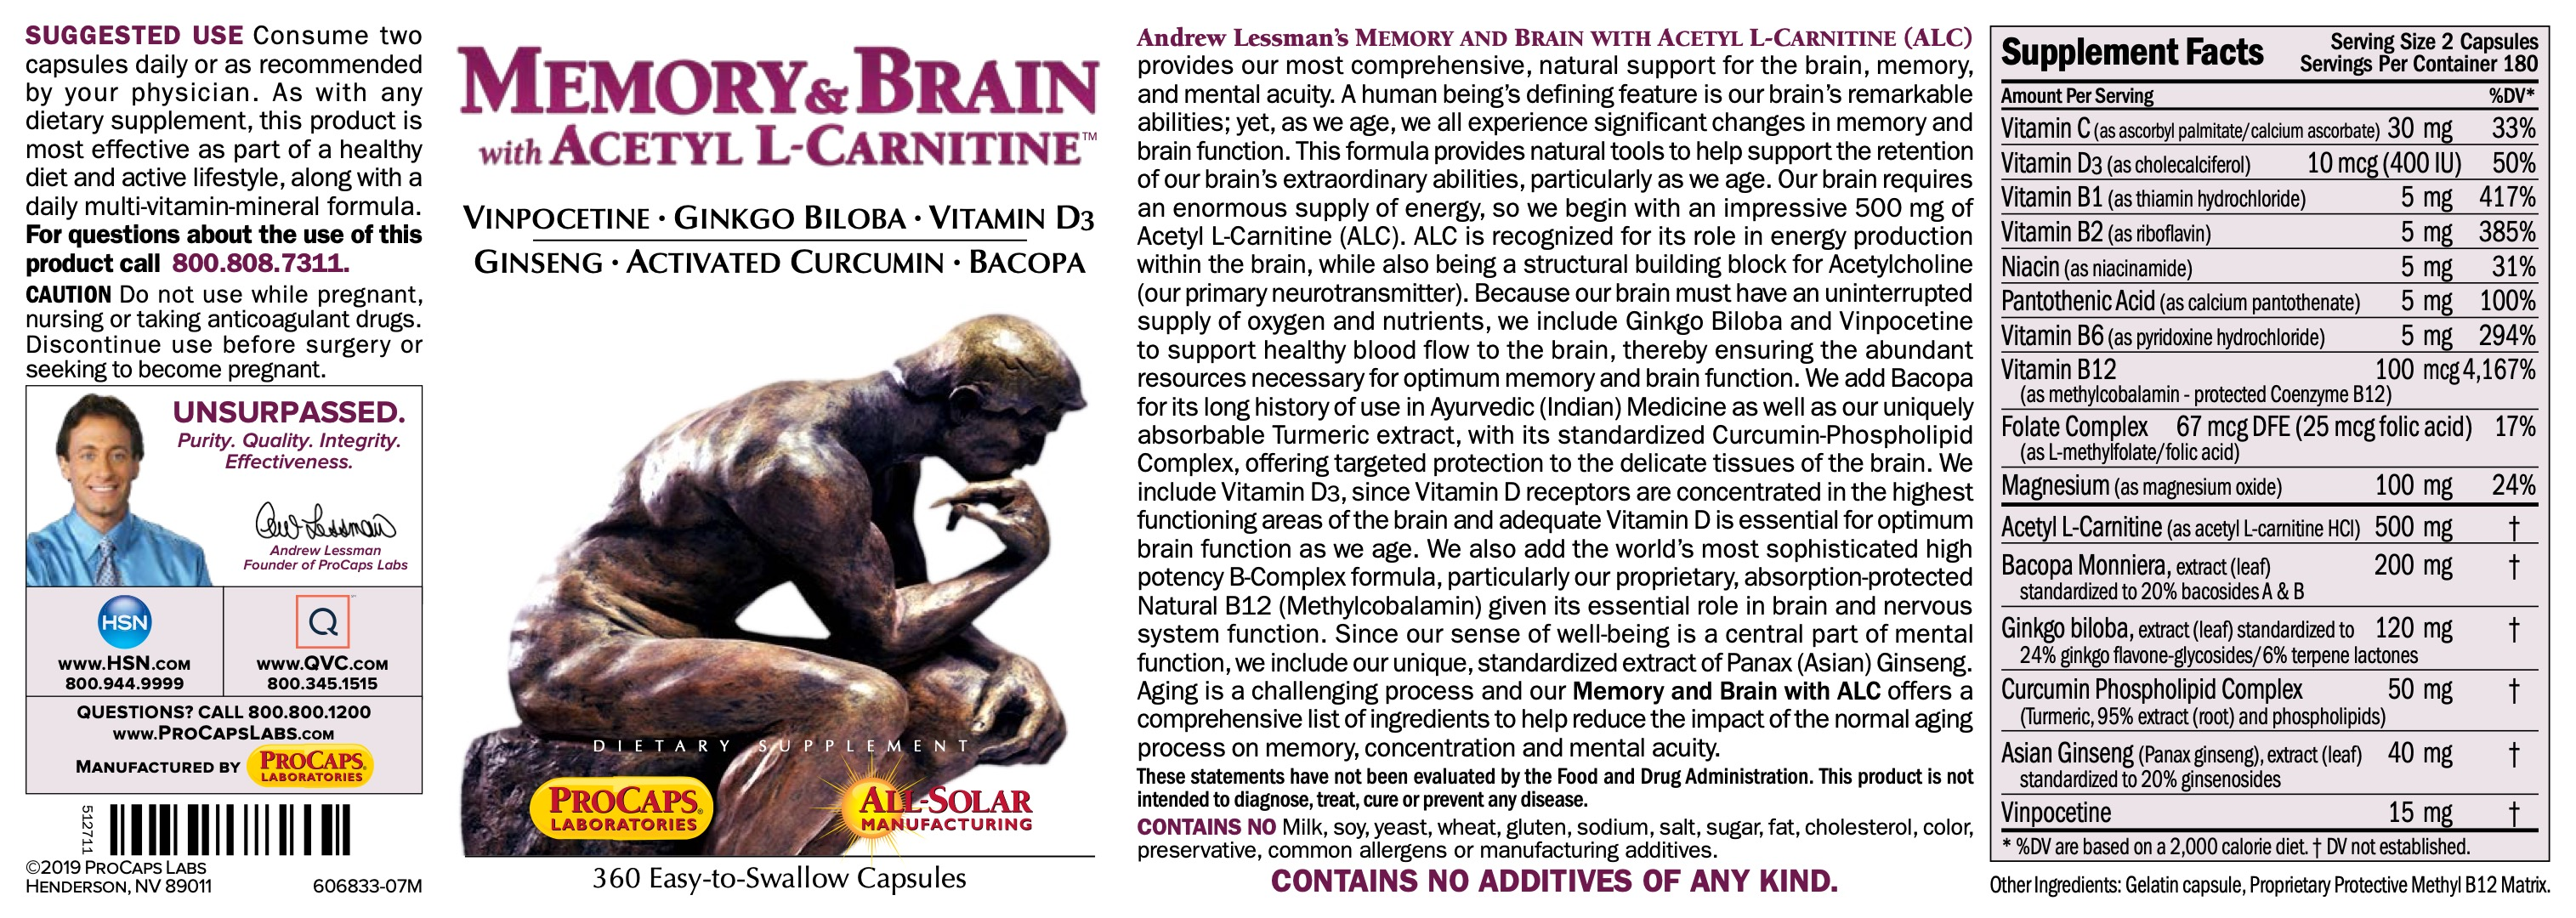 Memory-And-Brain-with-Acetyl-L-Carnitine-Capsules-Nervous-System-Support